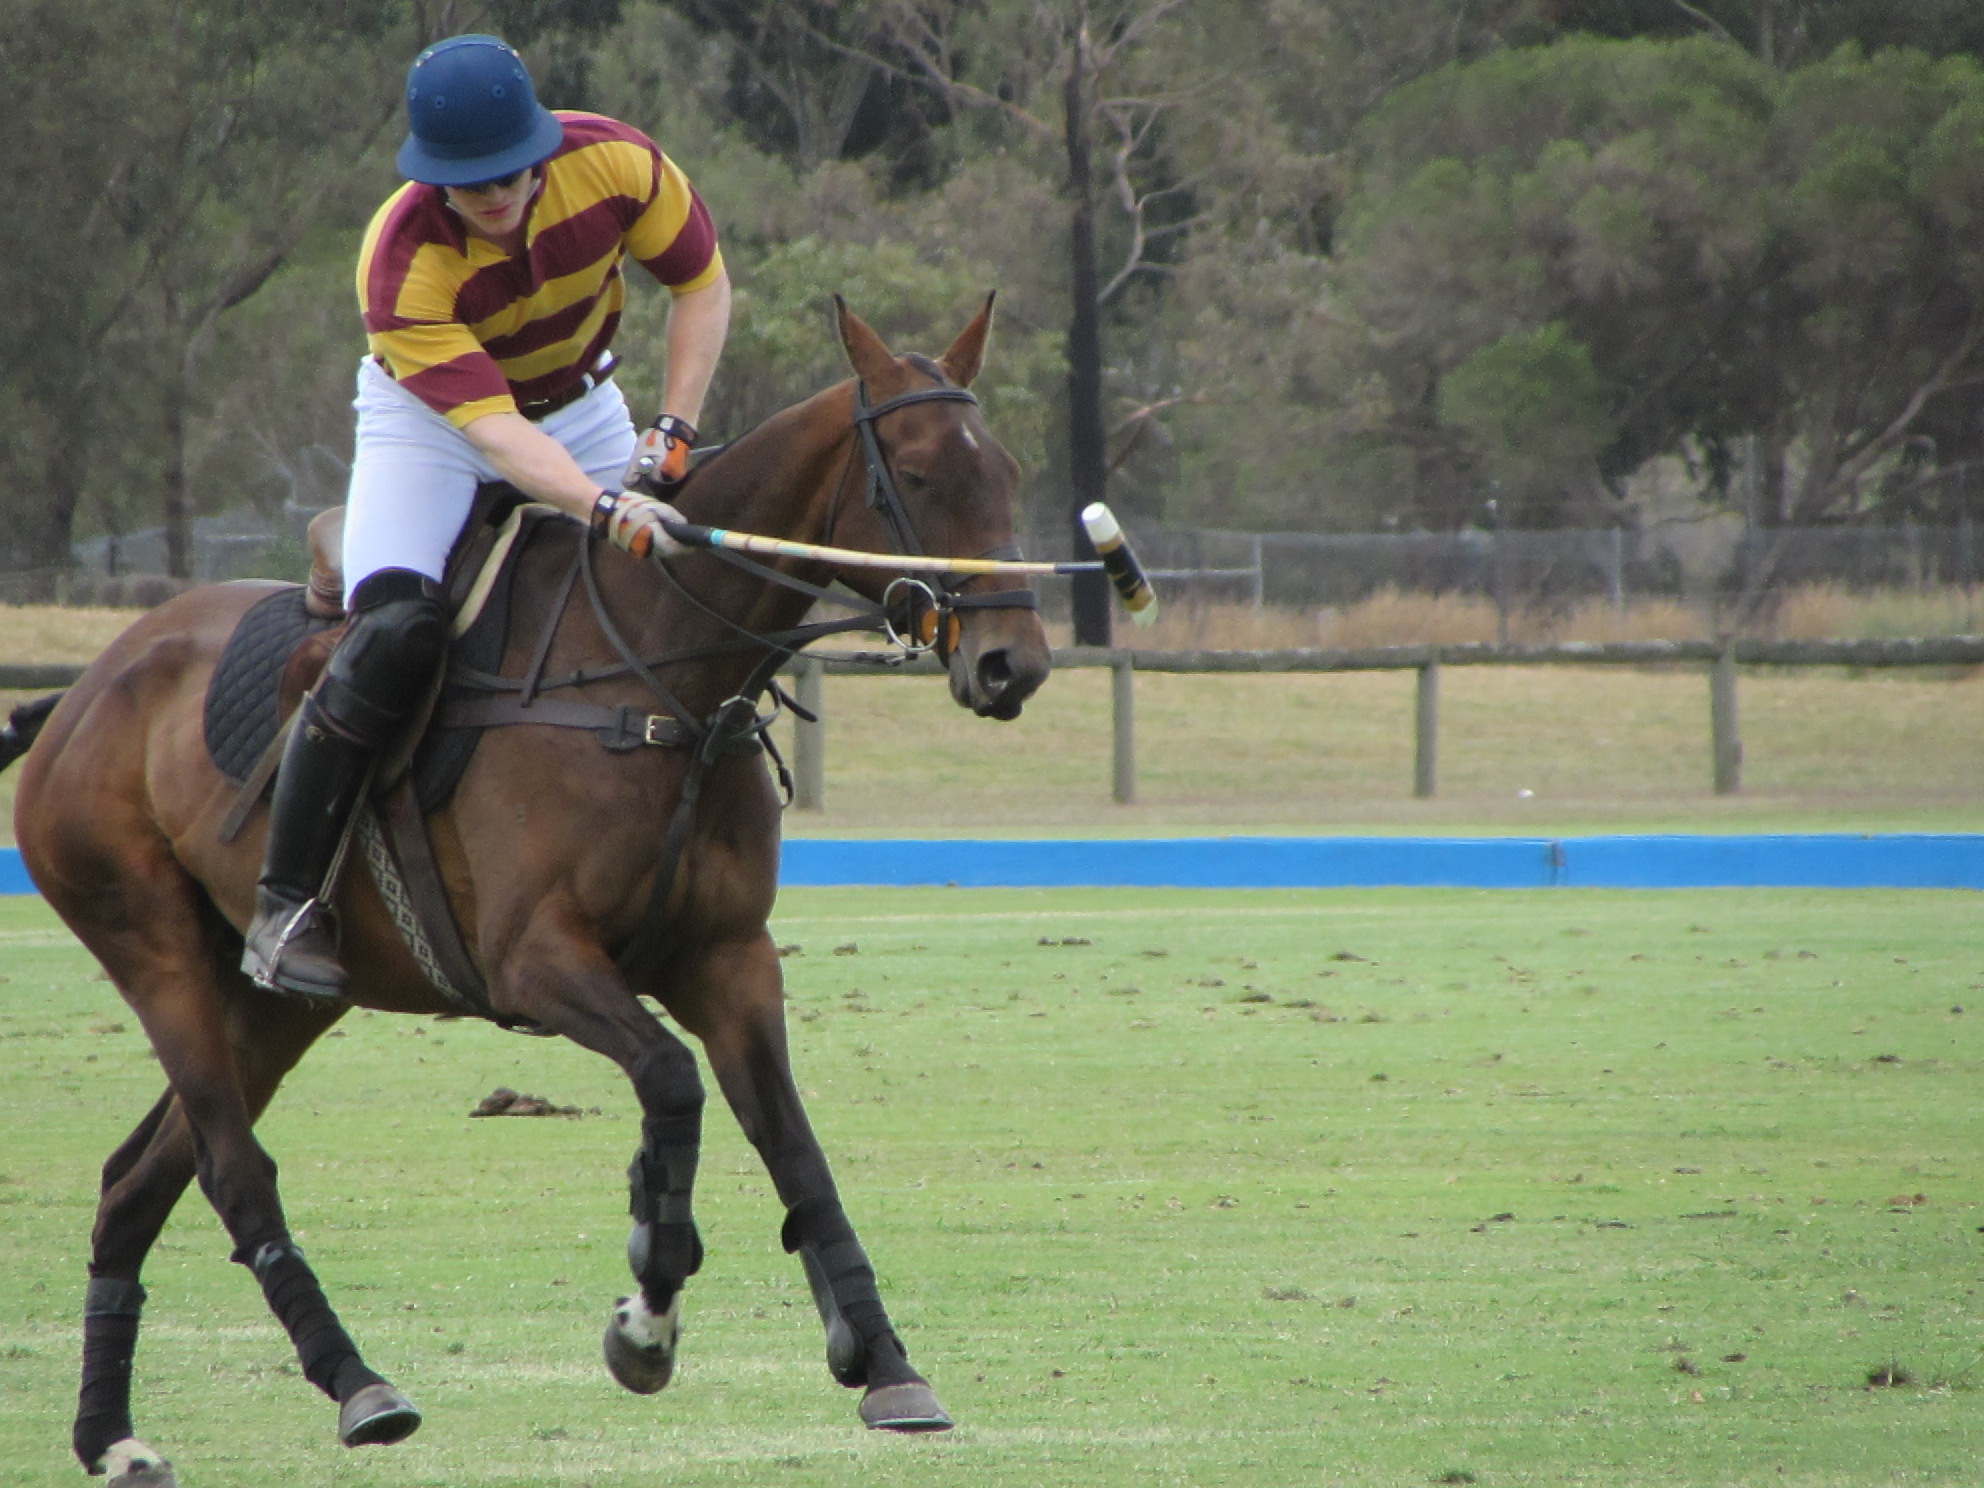 Hexham Polo Club - McArthur